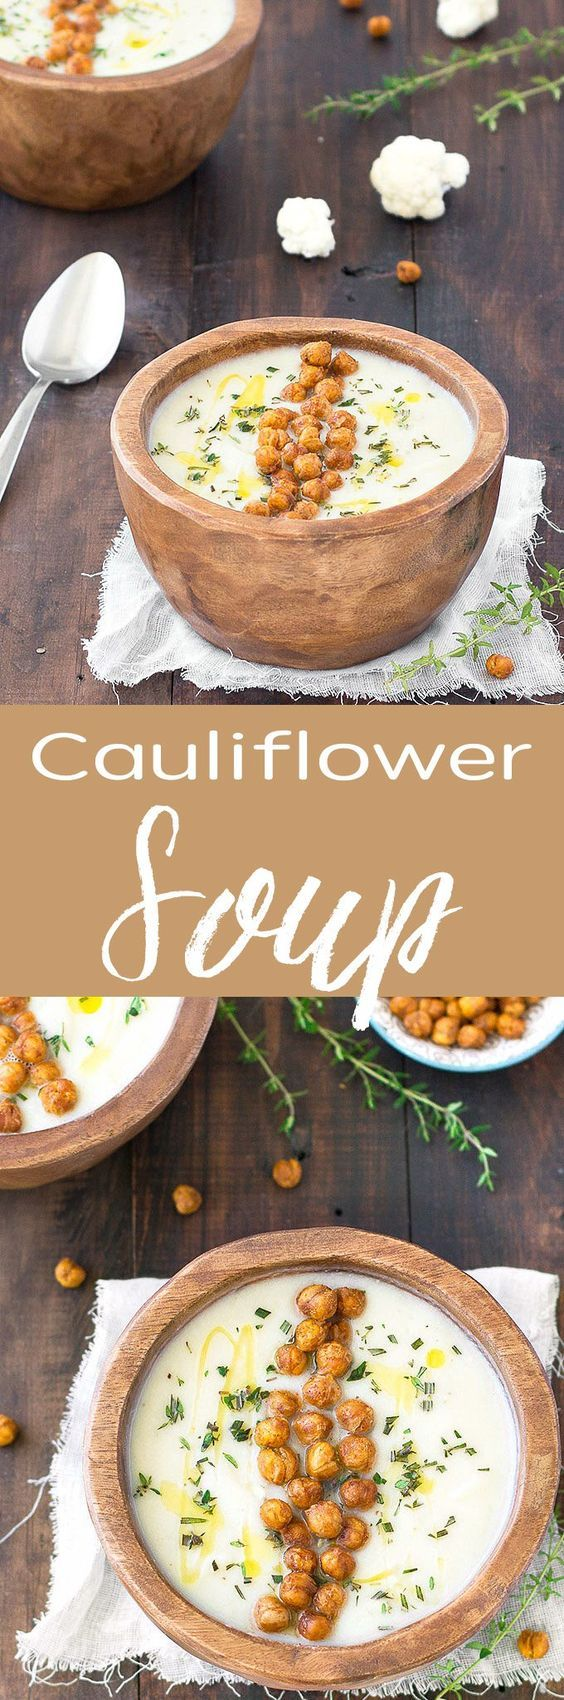 This simple creamy cauliflower soup is filling, naturally gluten free, low calorie, vegan, and tastes absolutely amazing. Only 120 calories